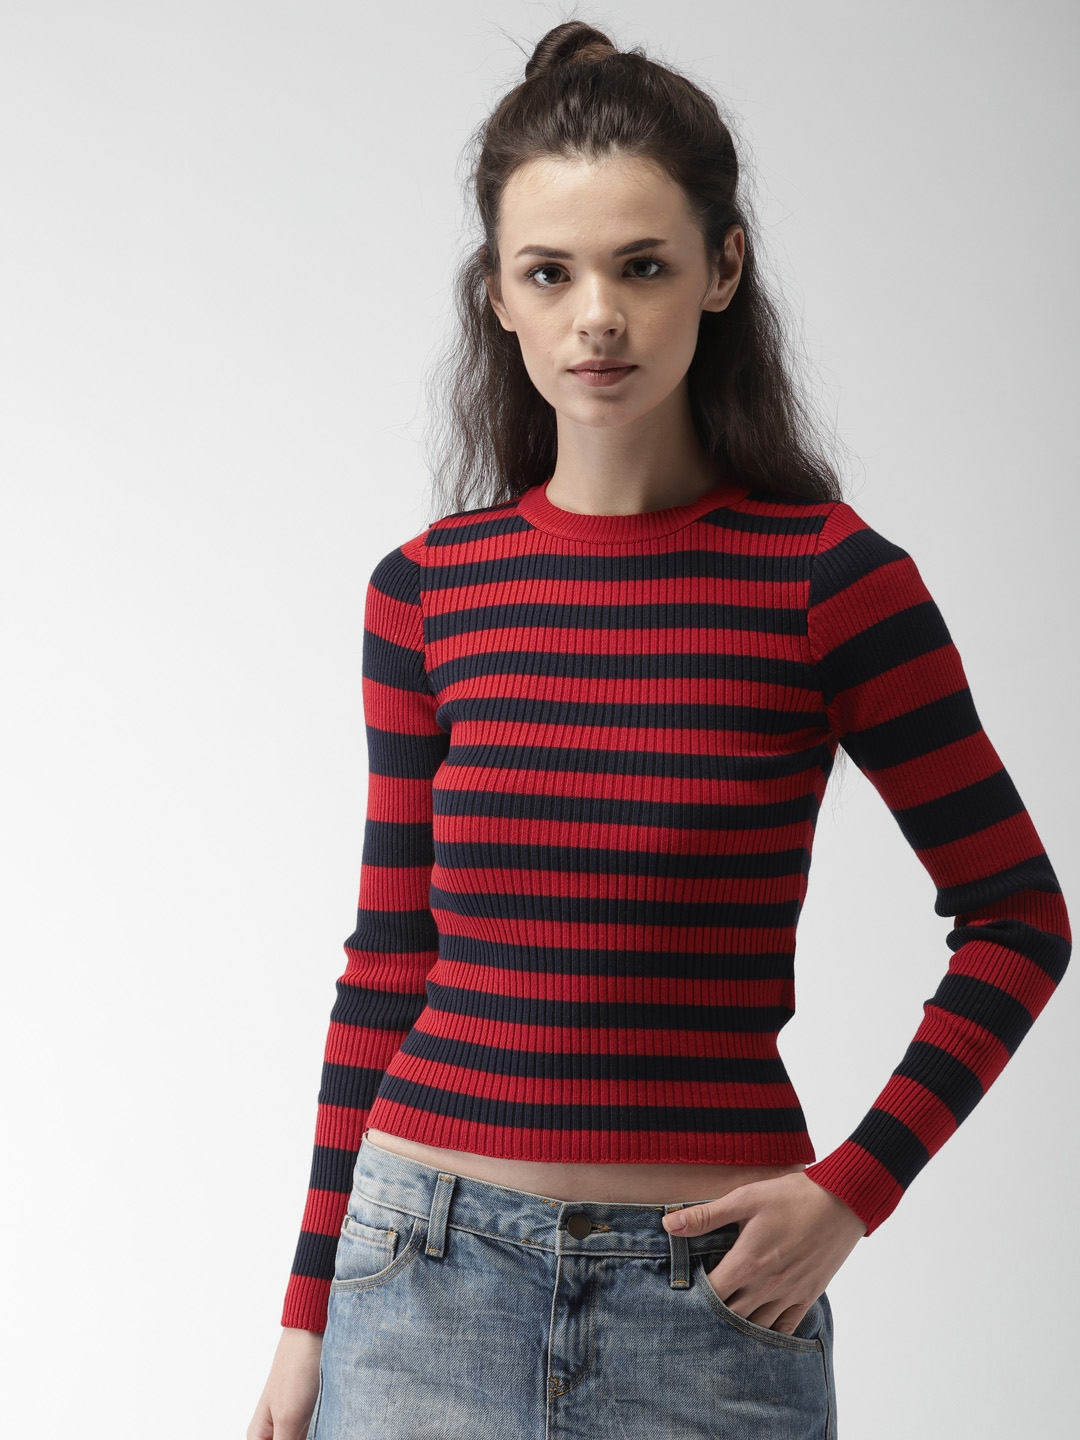 Buy FOREVER 21 Women Red   Navy Blue Striped Pullover - Sweaters for ... 02ea0db43